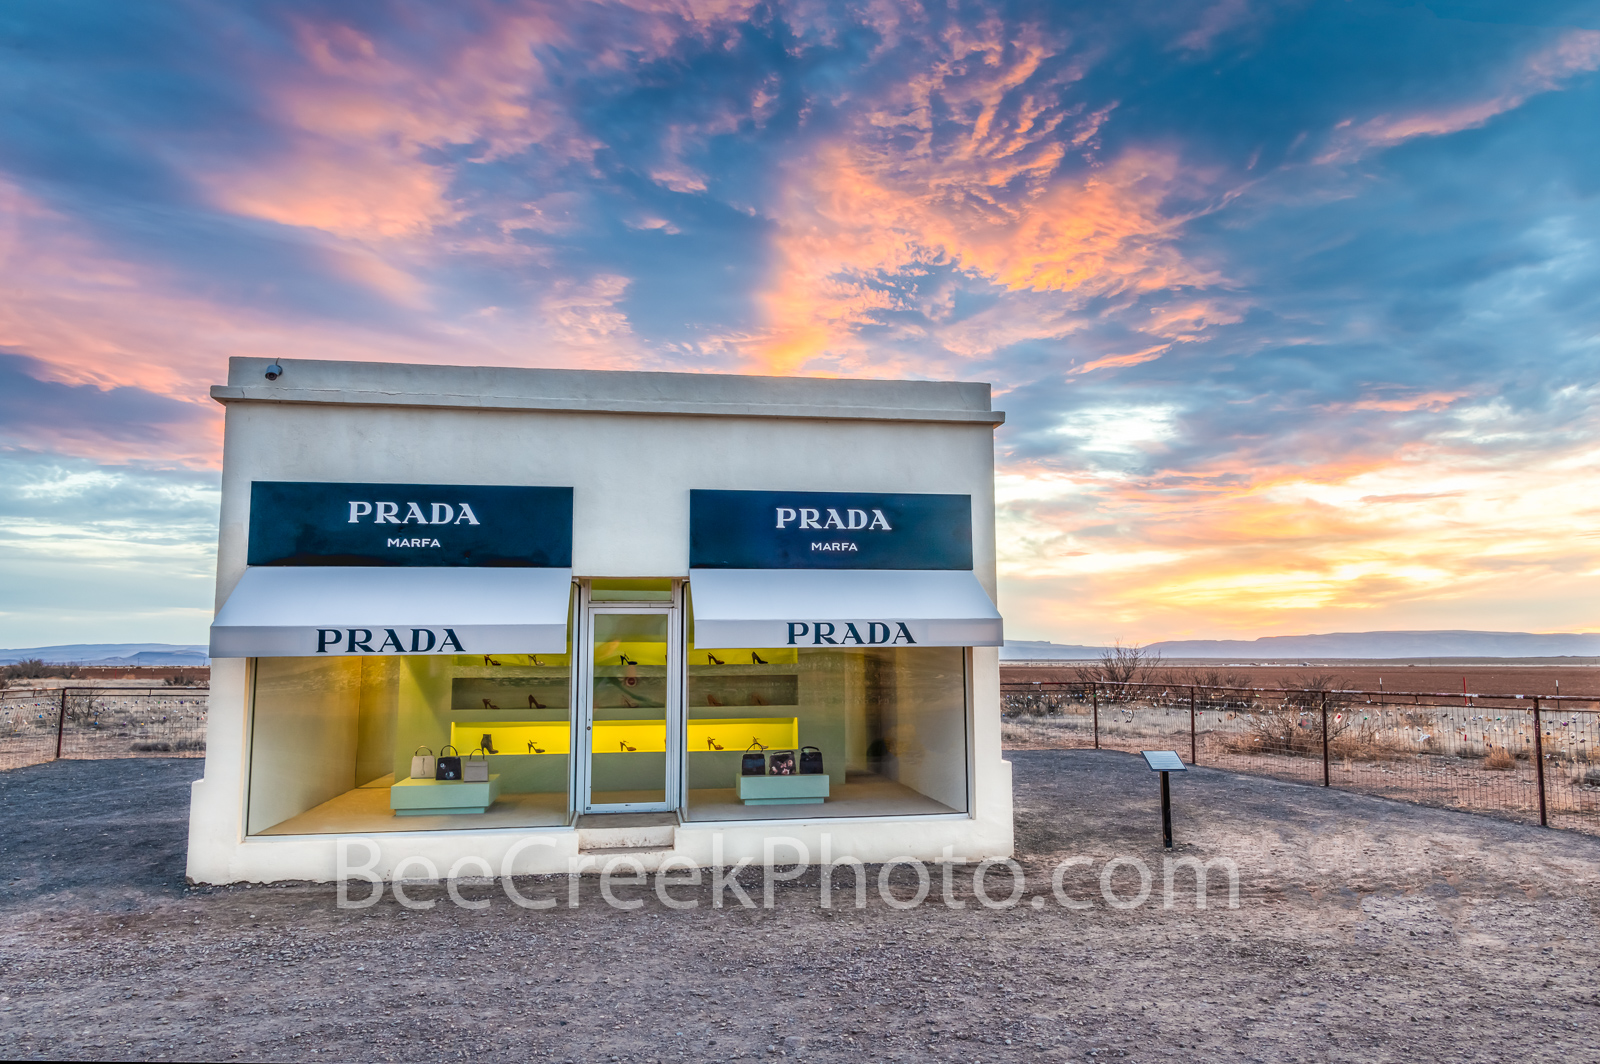 prada marfa sunset, west texas, prada, prada marfa, alpine, sunset, sunrise, landscape, texas. marfa prada, art, art exhibit, texas scenery, elmgreen and dragset, artist, art exhibit, texas scenery,